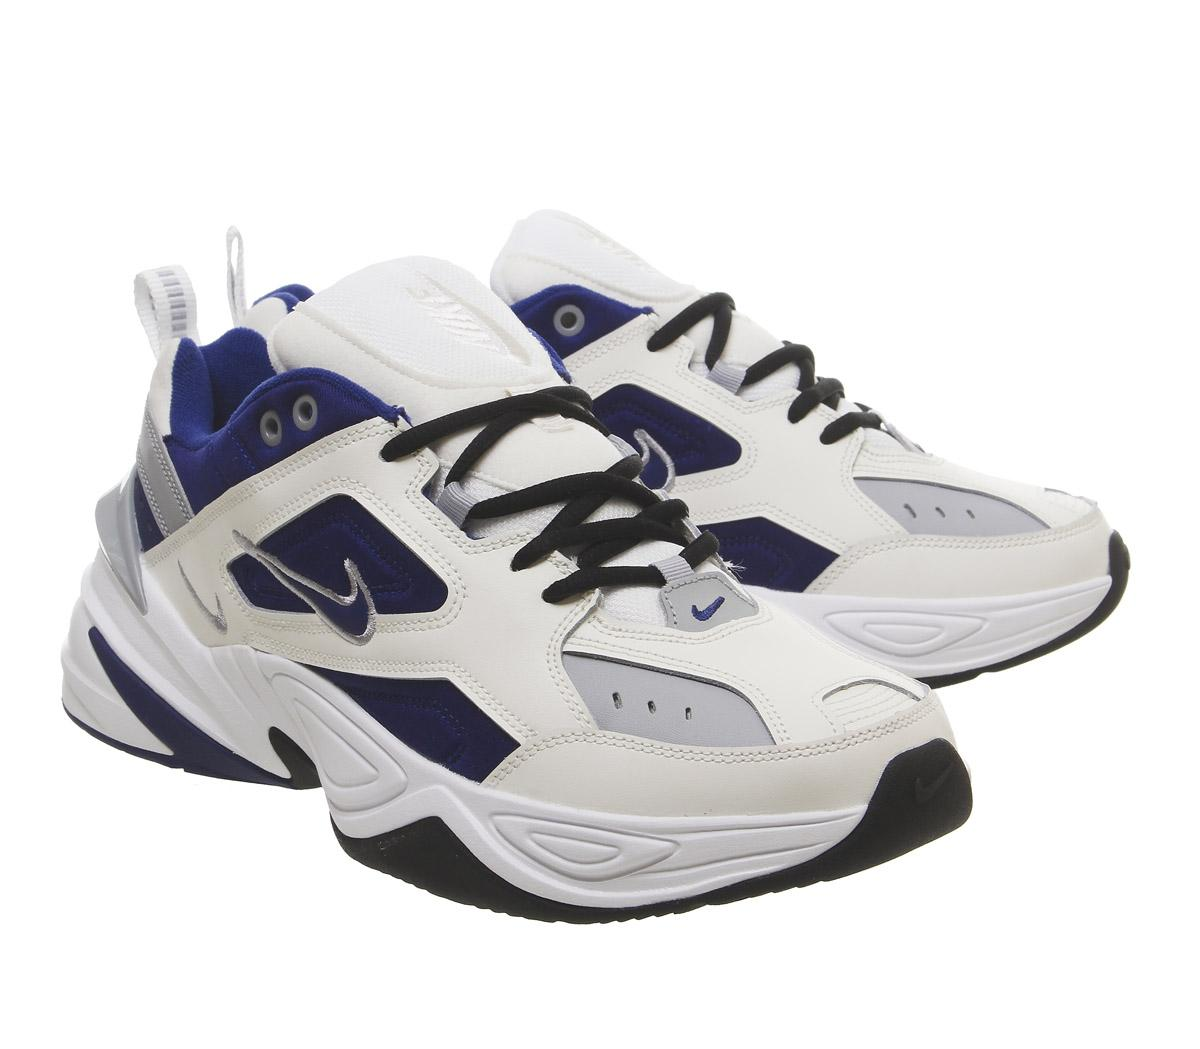 differently latest fashion famous brand Nike M2k Tekno Trainers Sail Deep Royal Blue Wolf Grey White Black